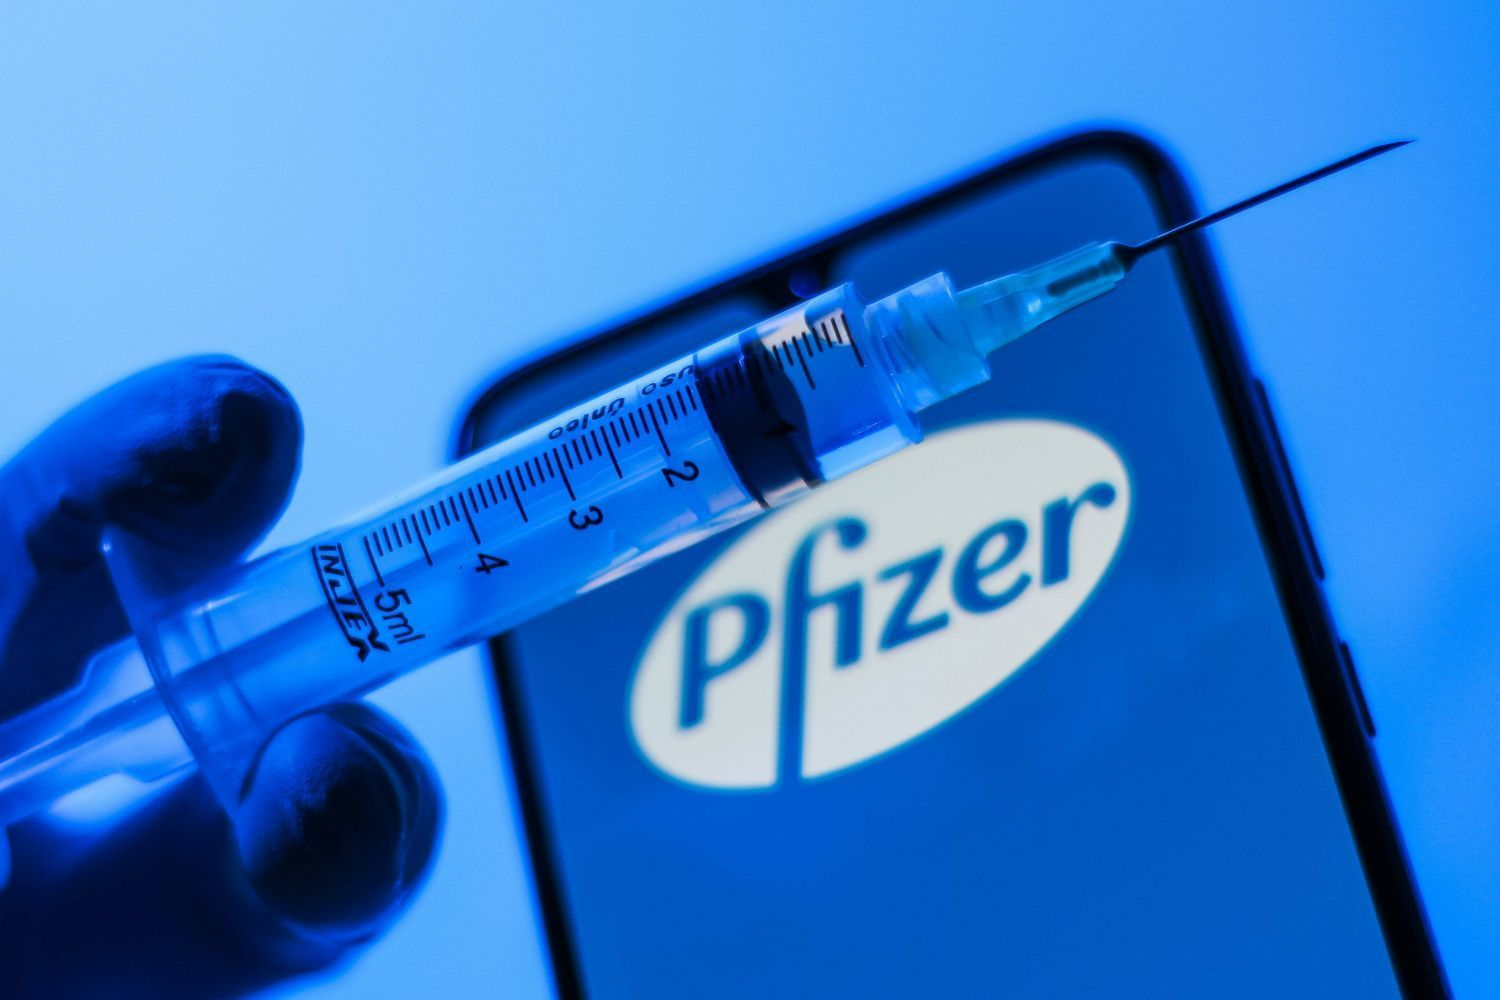 US pharmaceutical giant Pfizer will open a new hub in Greece